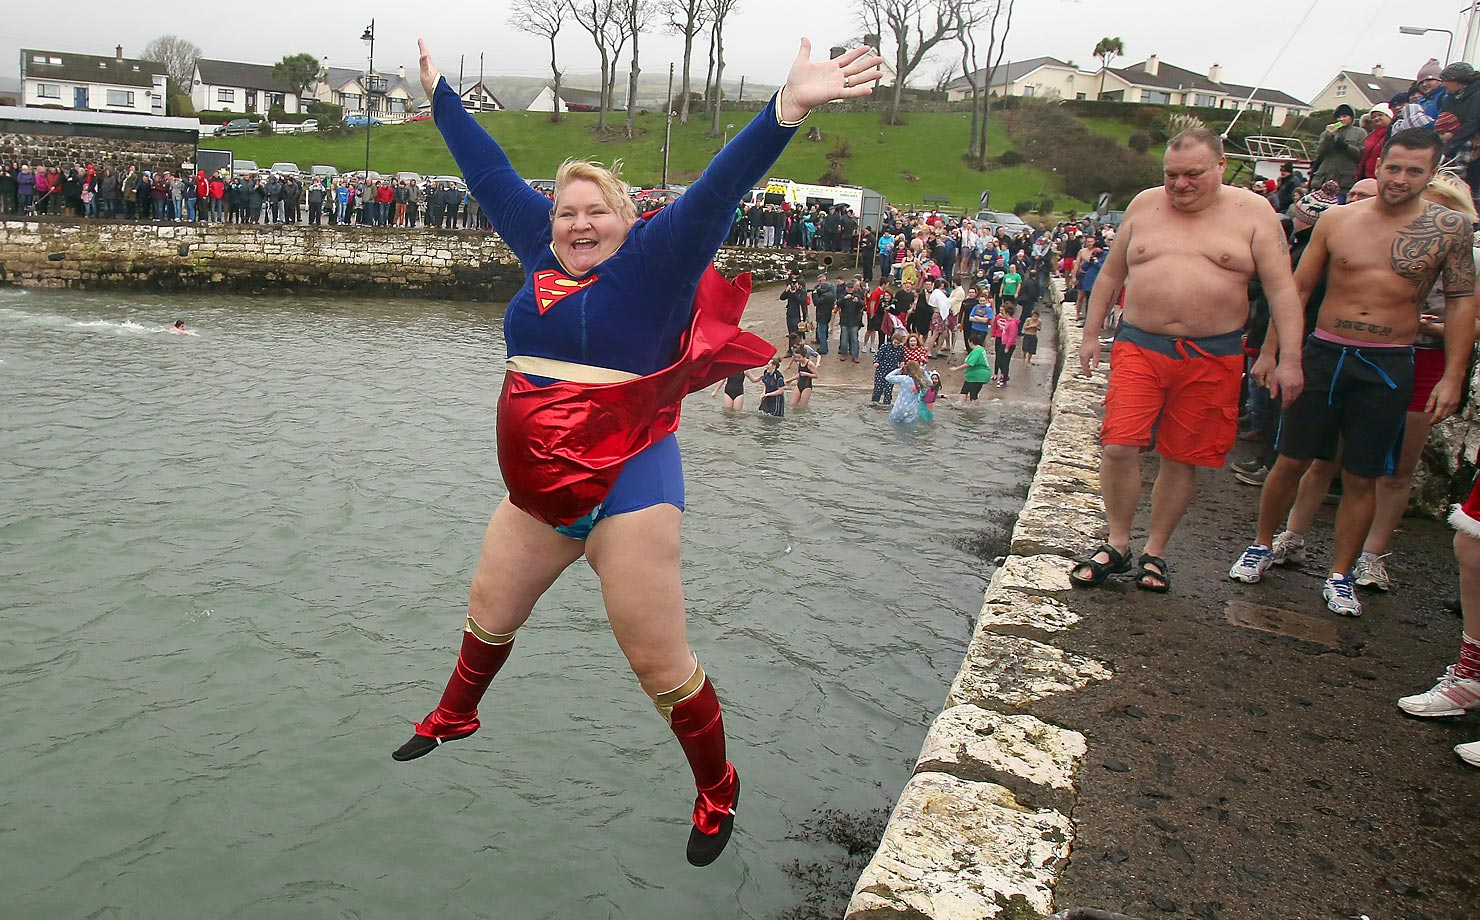 A woman takes a plunge into Carnlough harbor in Northern Ireland on New Year's Day during a charity event.